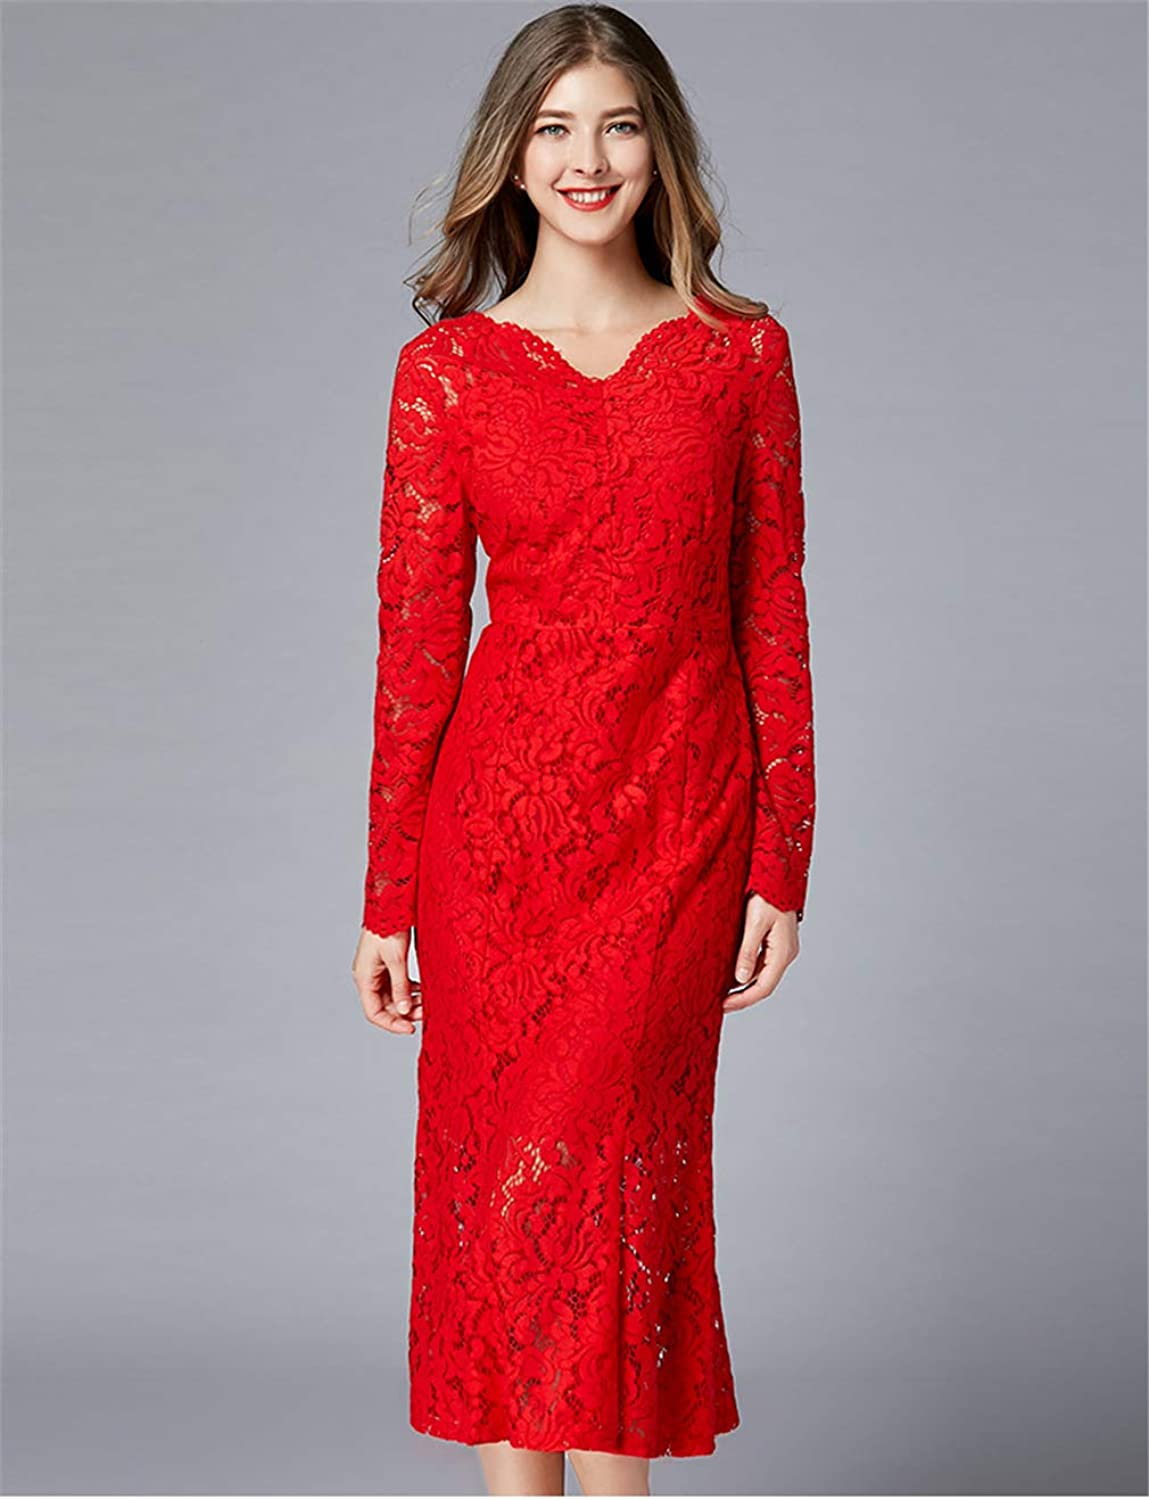 Dress Lace Red VNeck Long Sleeve Plus Size Cocktail Bride Wedding Party Clothing